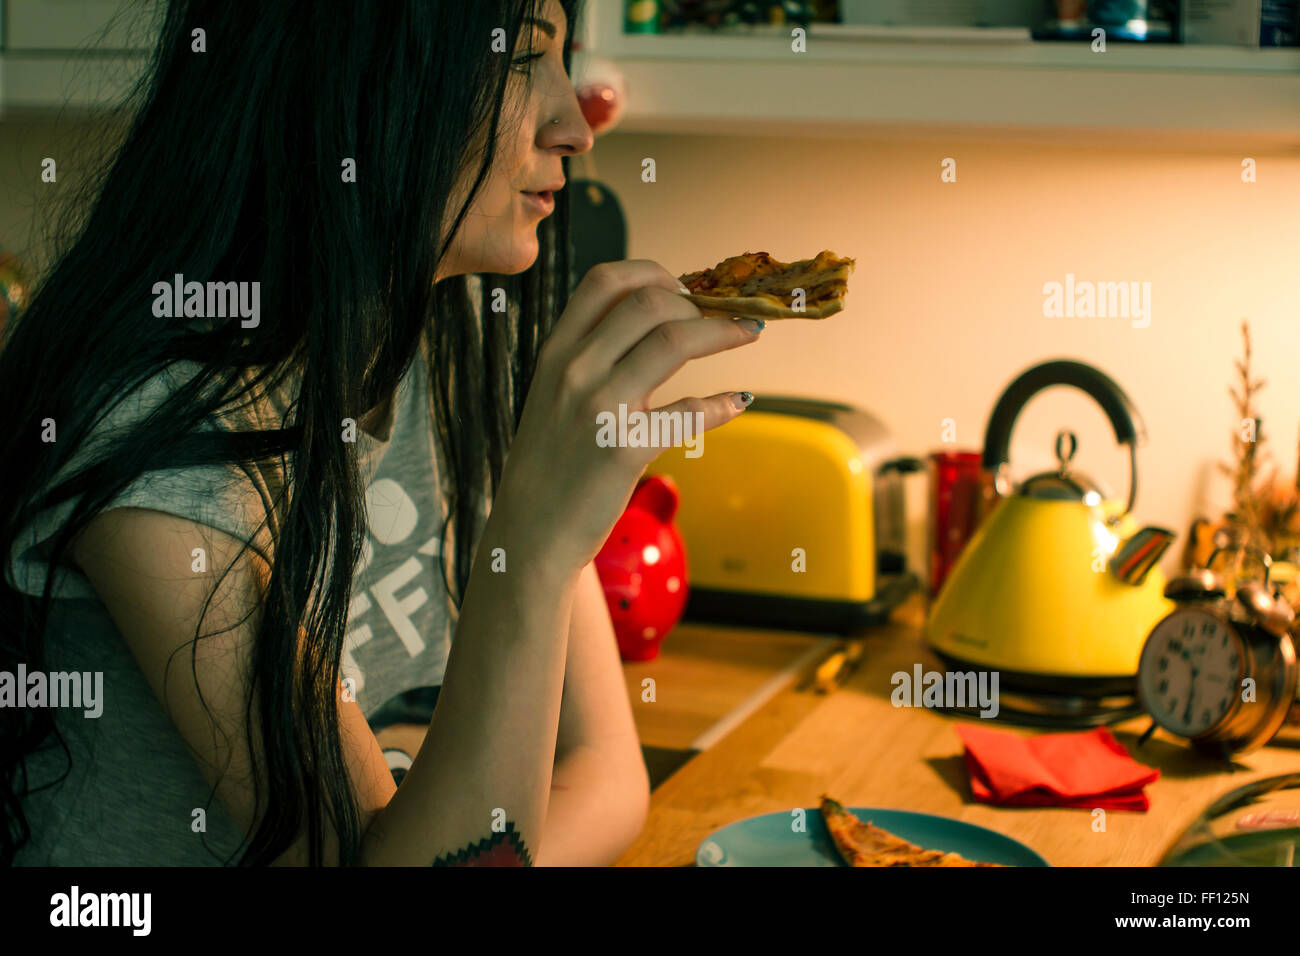 Caucasian woman eating pizza in kitchen Stock Photo